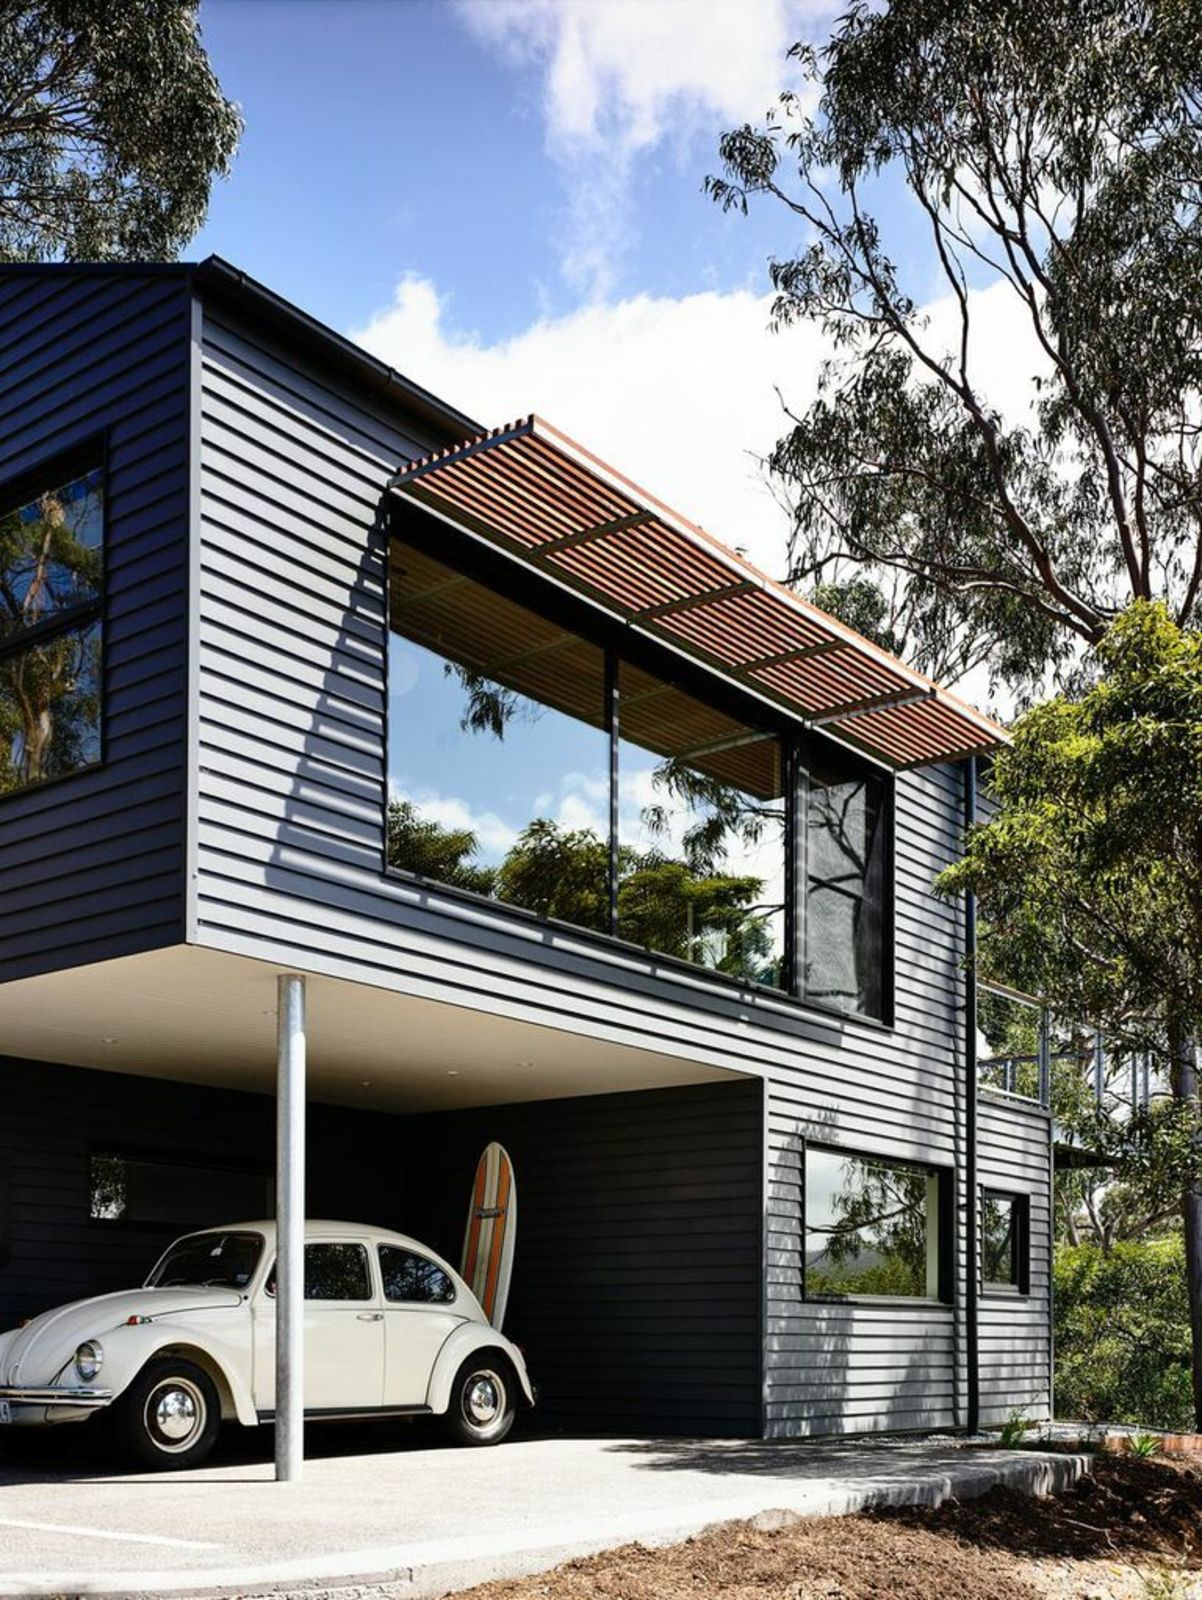 Home Design Ideas Australia: A Breezy Modern Beach House Sits Among The Trees In